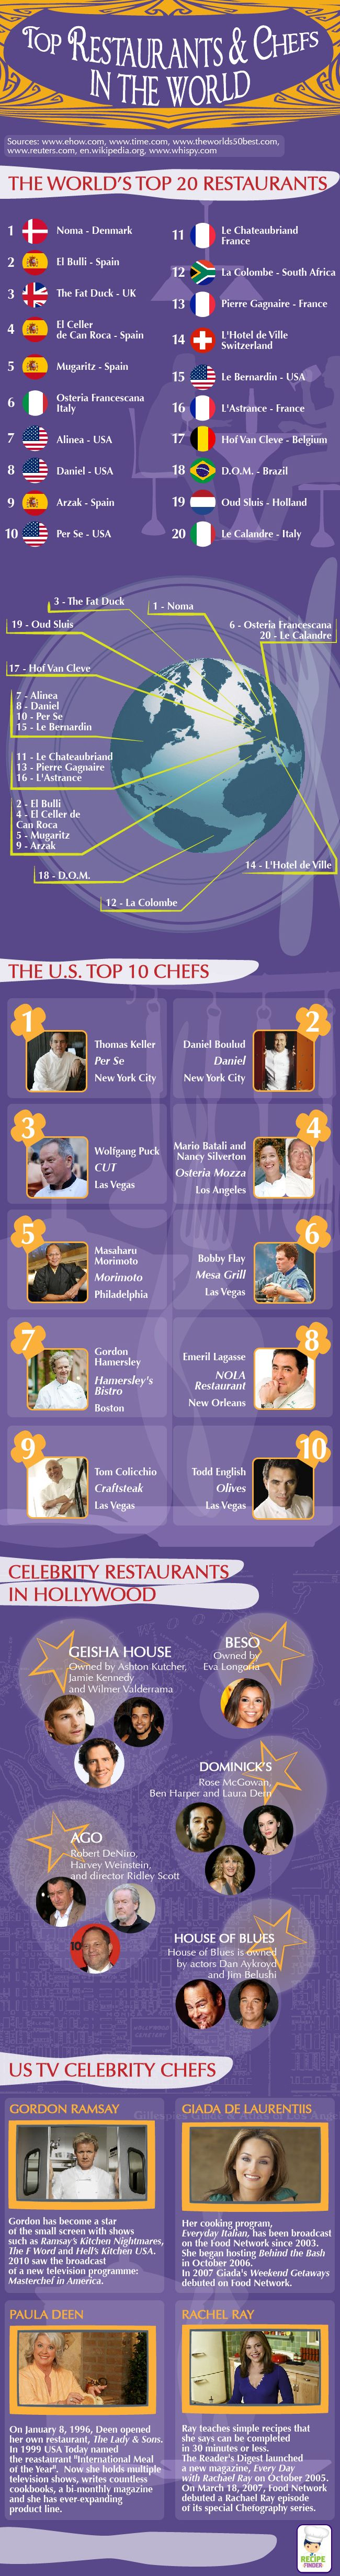 Celebrity chefs, and their recipes, have been popular in the last years, more than ever before even. With shows hosted by Gordon Ramsey in both USA an